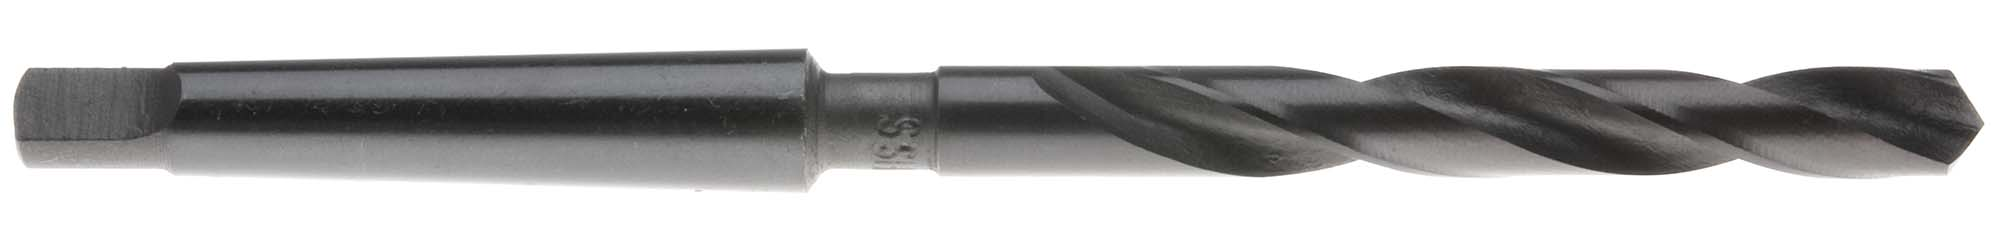 31 mm Taper Shank Drill, High Speed Steel